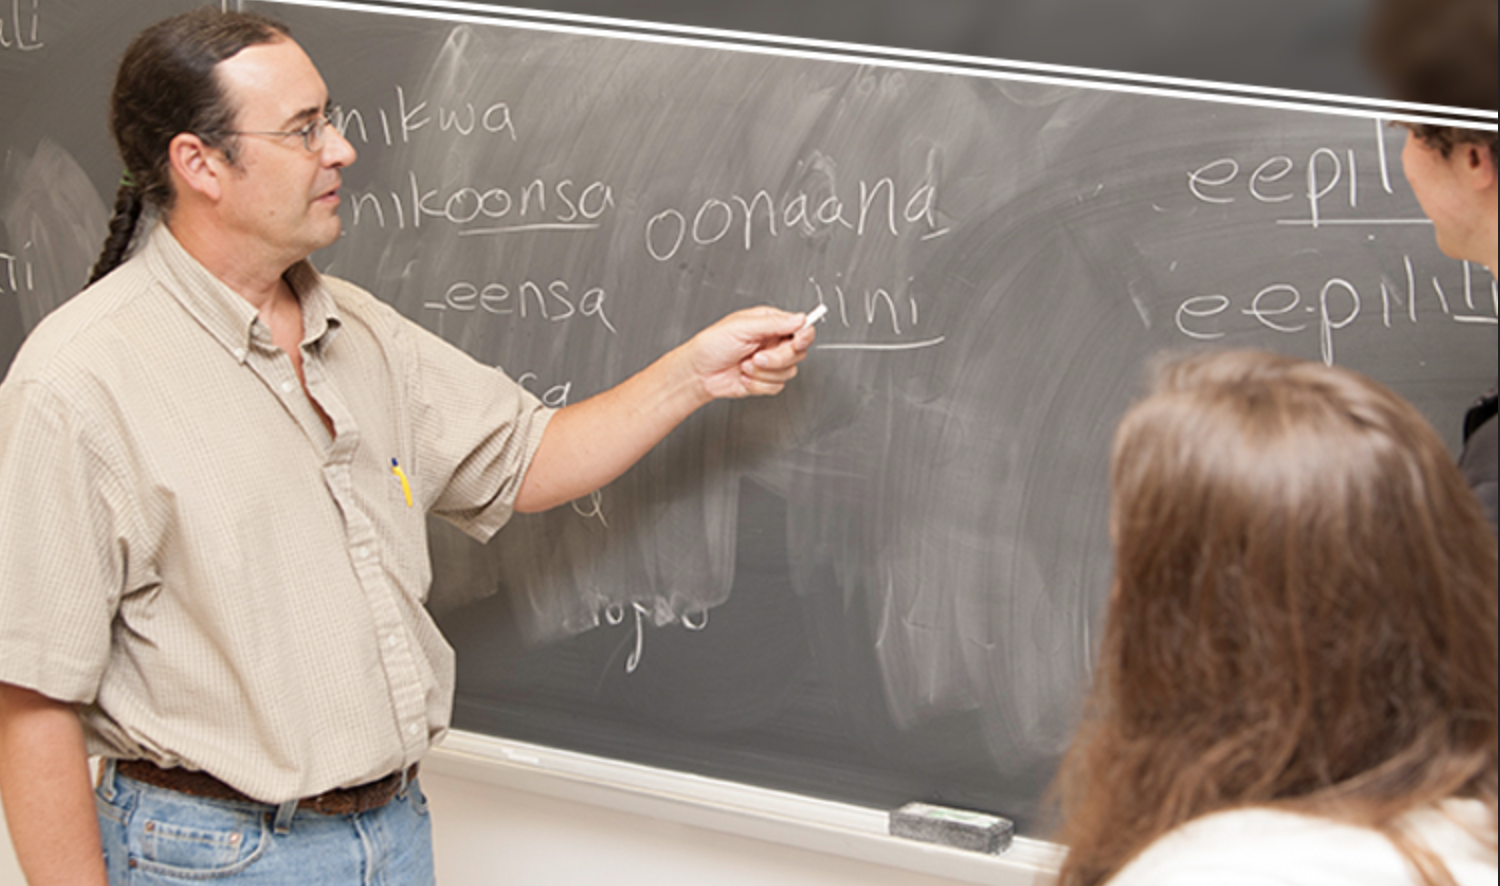 Daryl Baldwin pointing at a blackboard